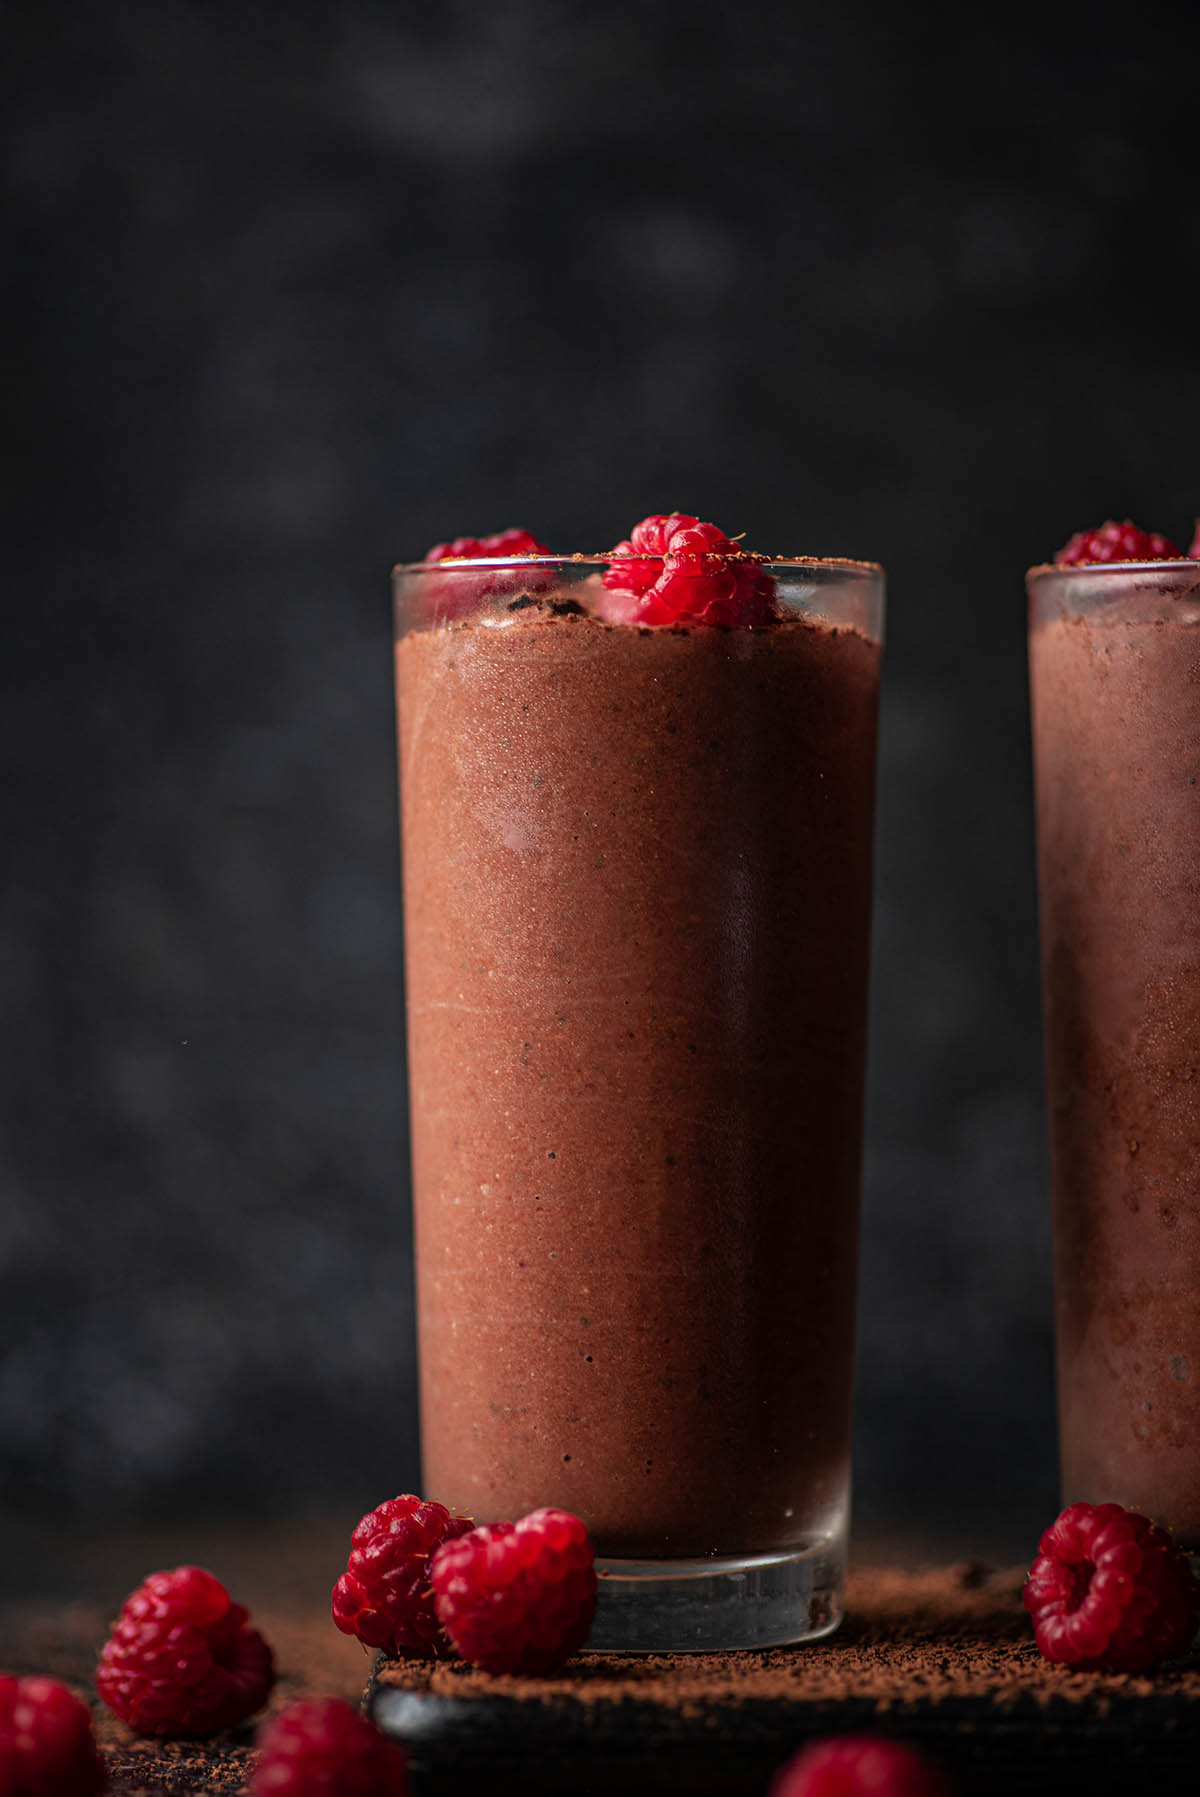 Two glasses of chocolate smoothie with raspberries.